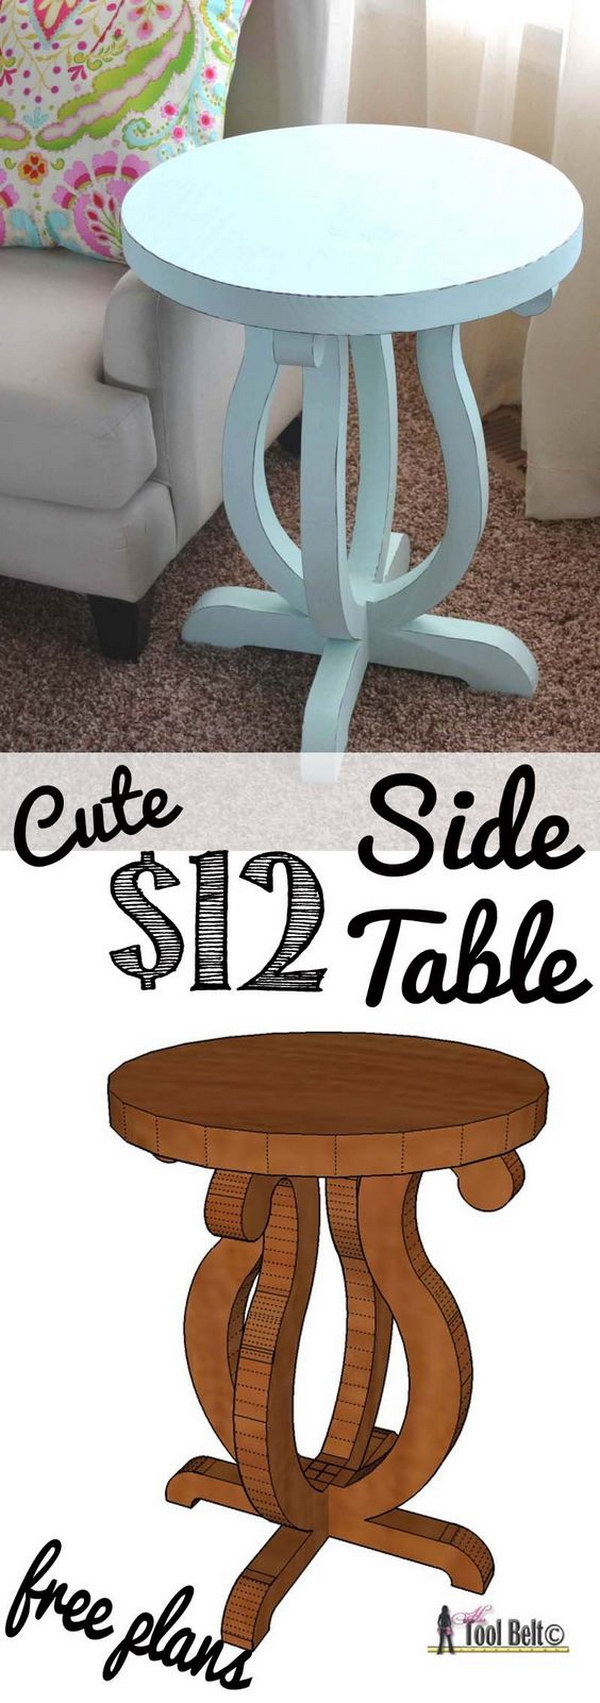 $12 Curvy Side Table